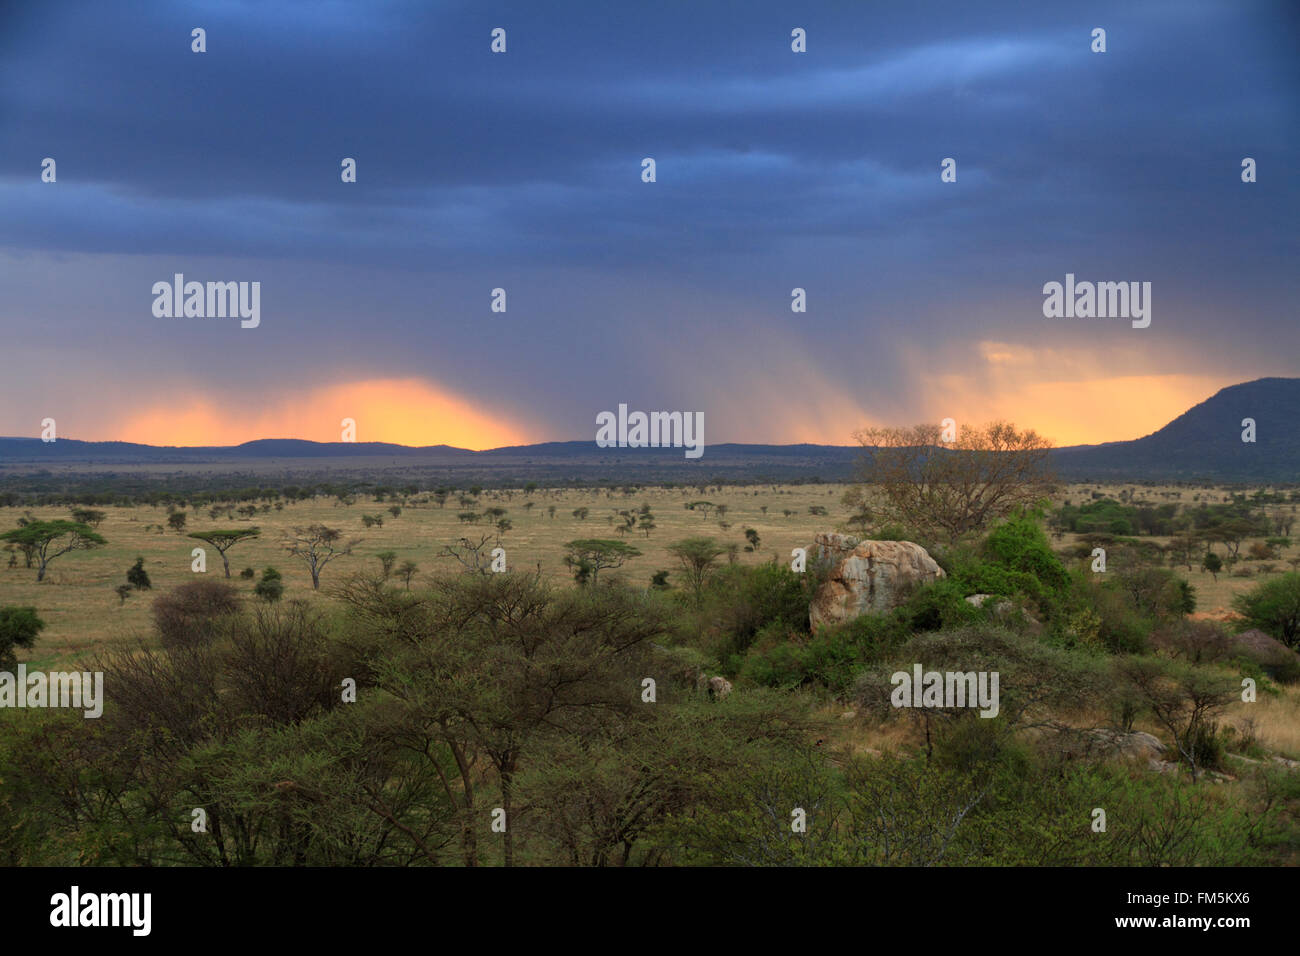 A sunset through rain clouds on the african savannah - Stock Image